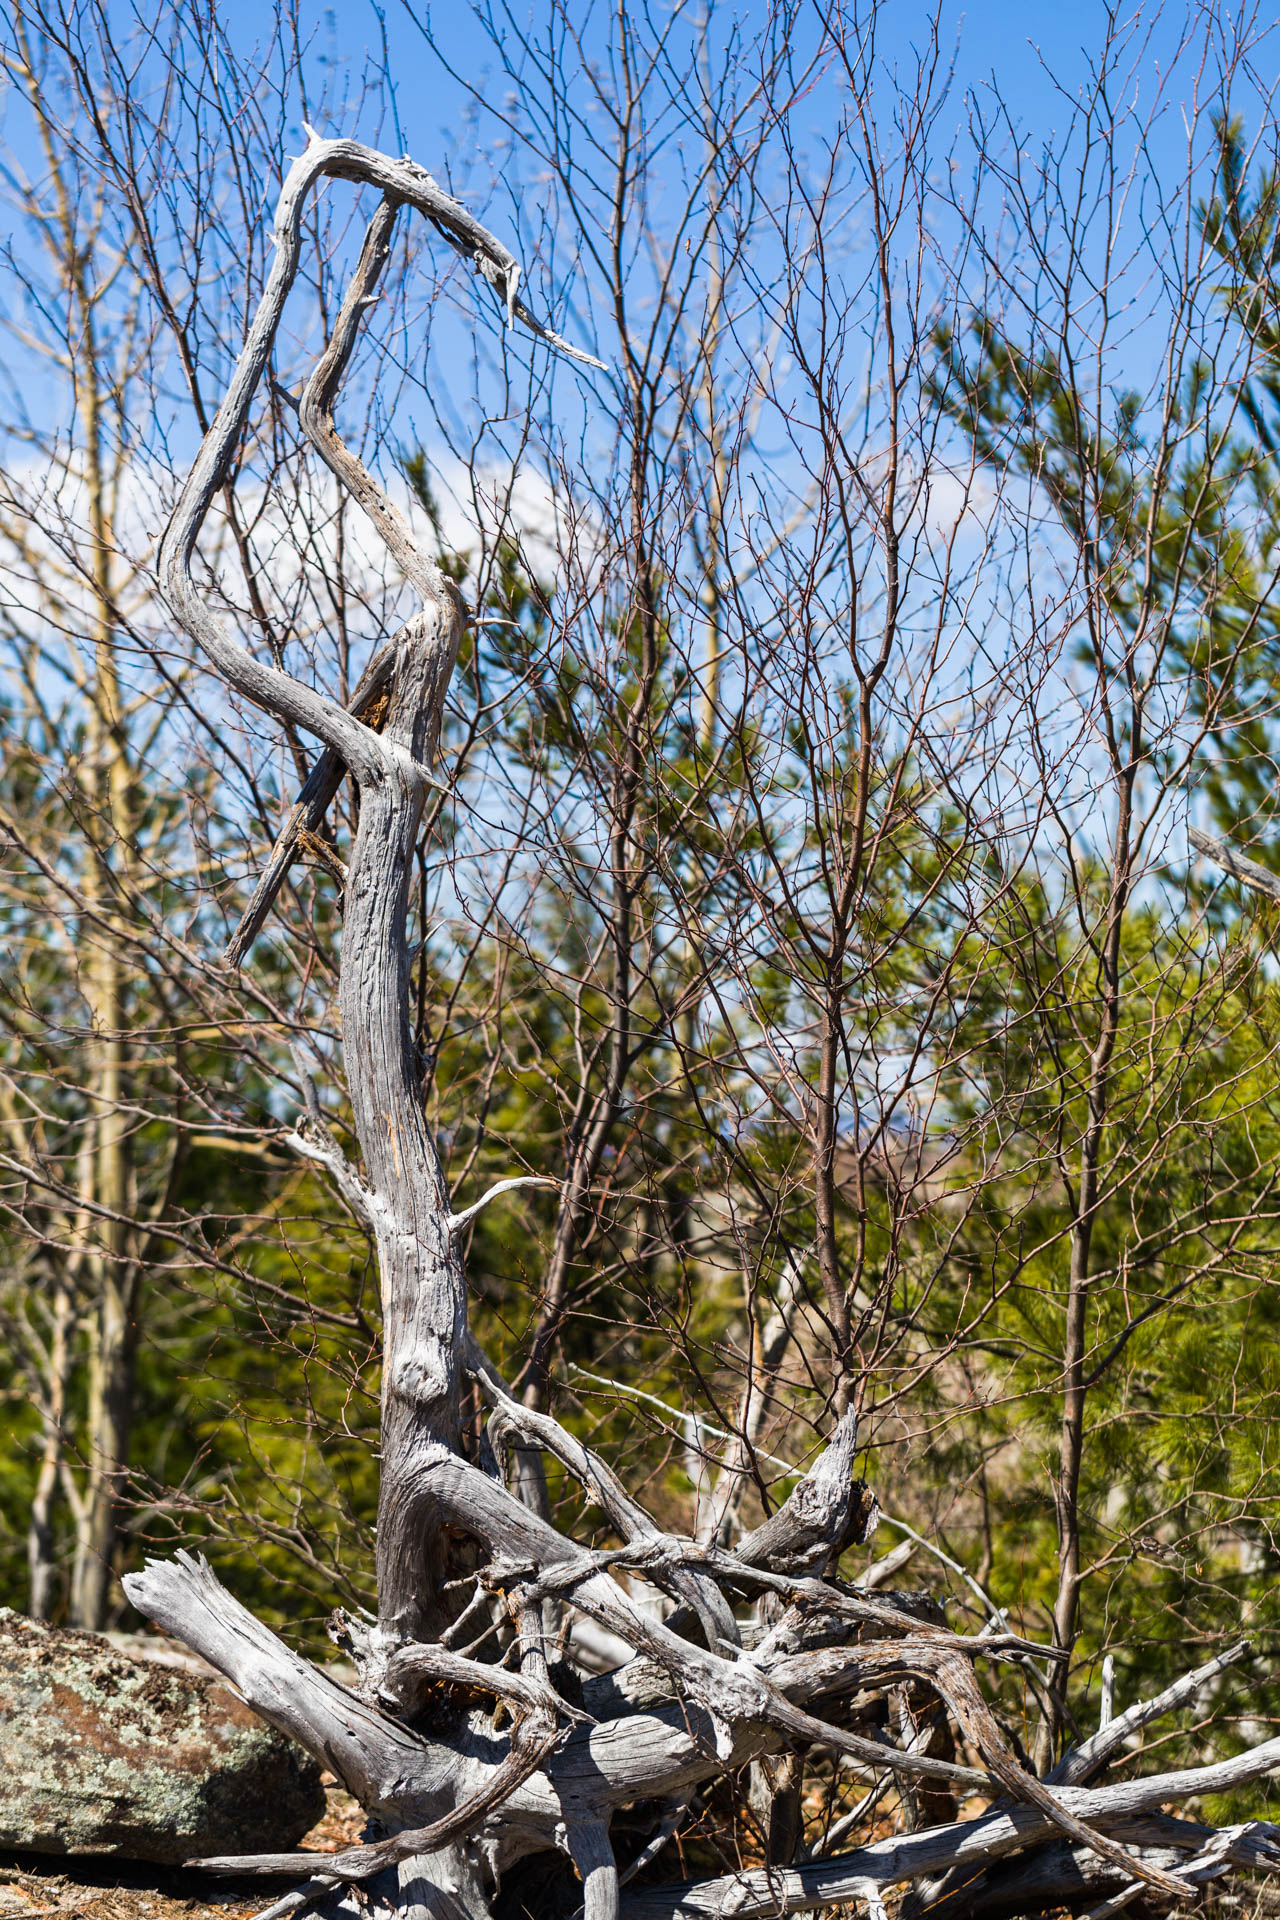 harriman_hike_april-5.jpg